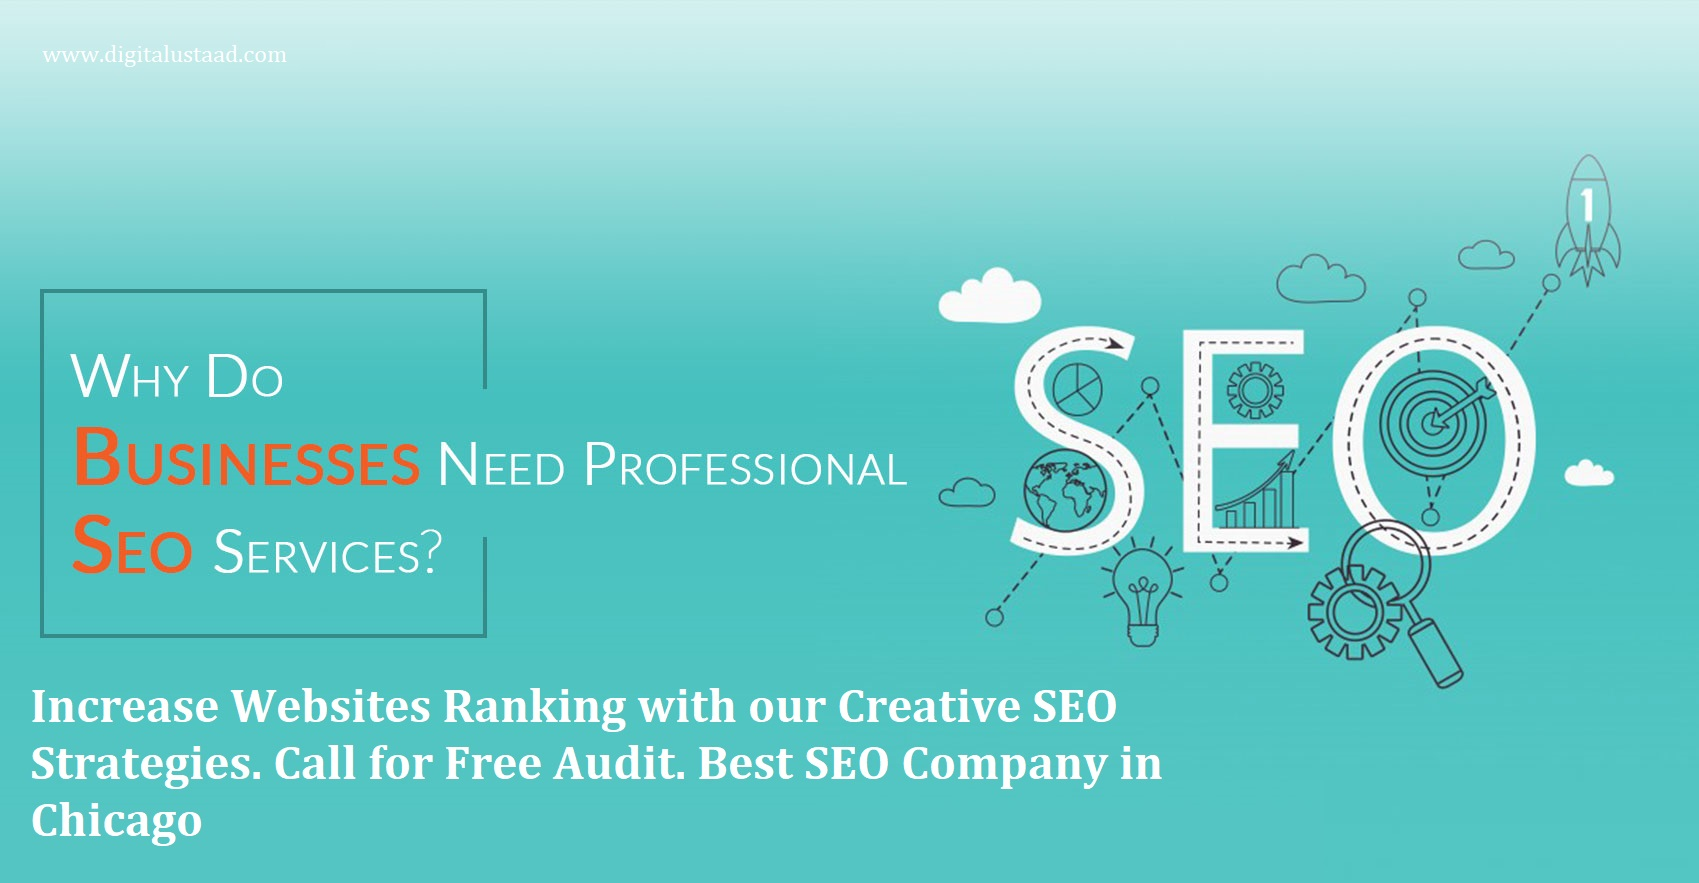 Top SEO Company in Chicago